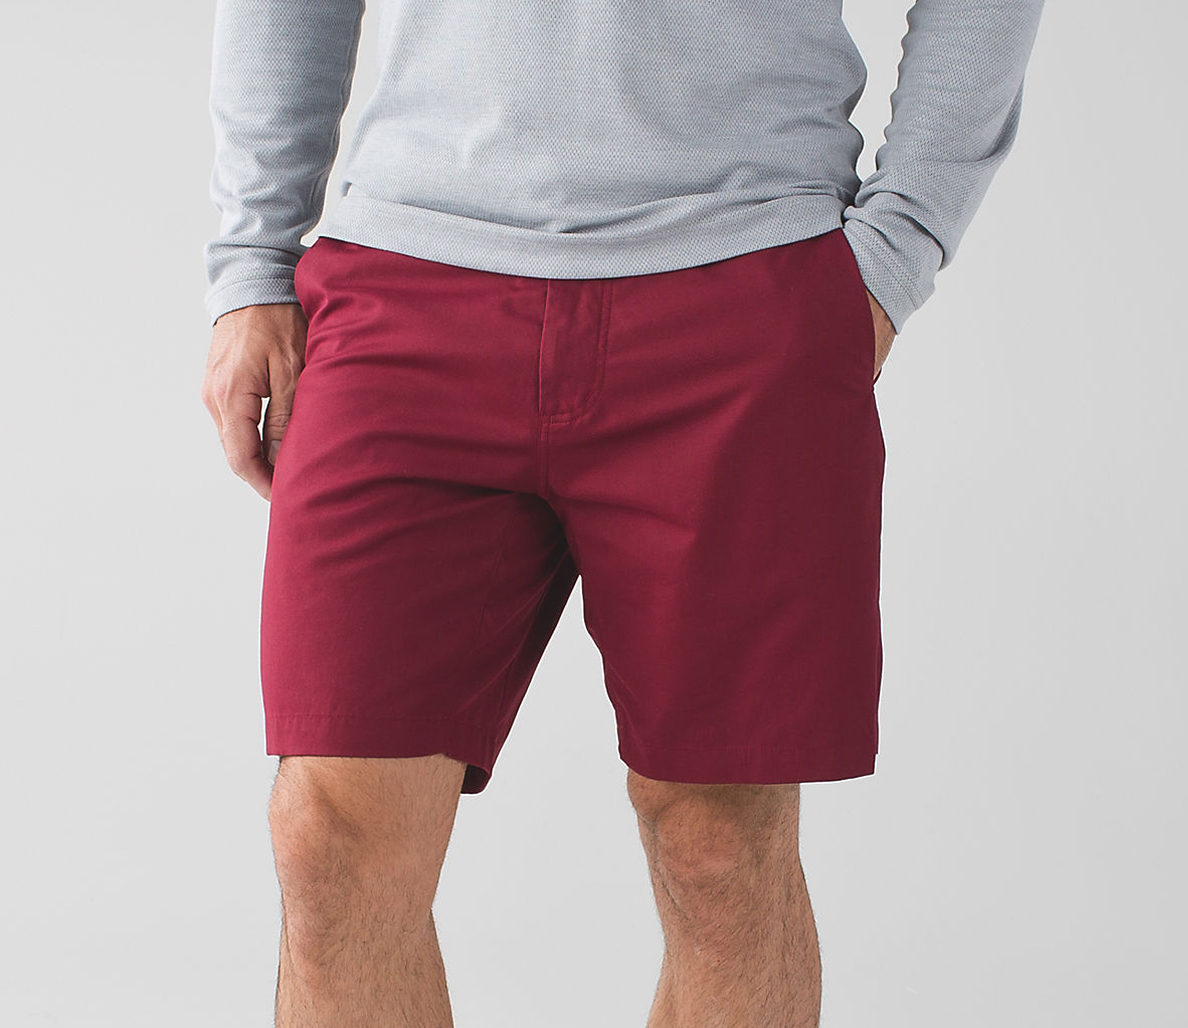 9bcd451d3446 10 Best Shorts for Men to Wear in the Summer Heat